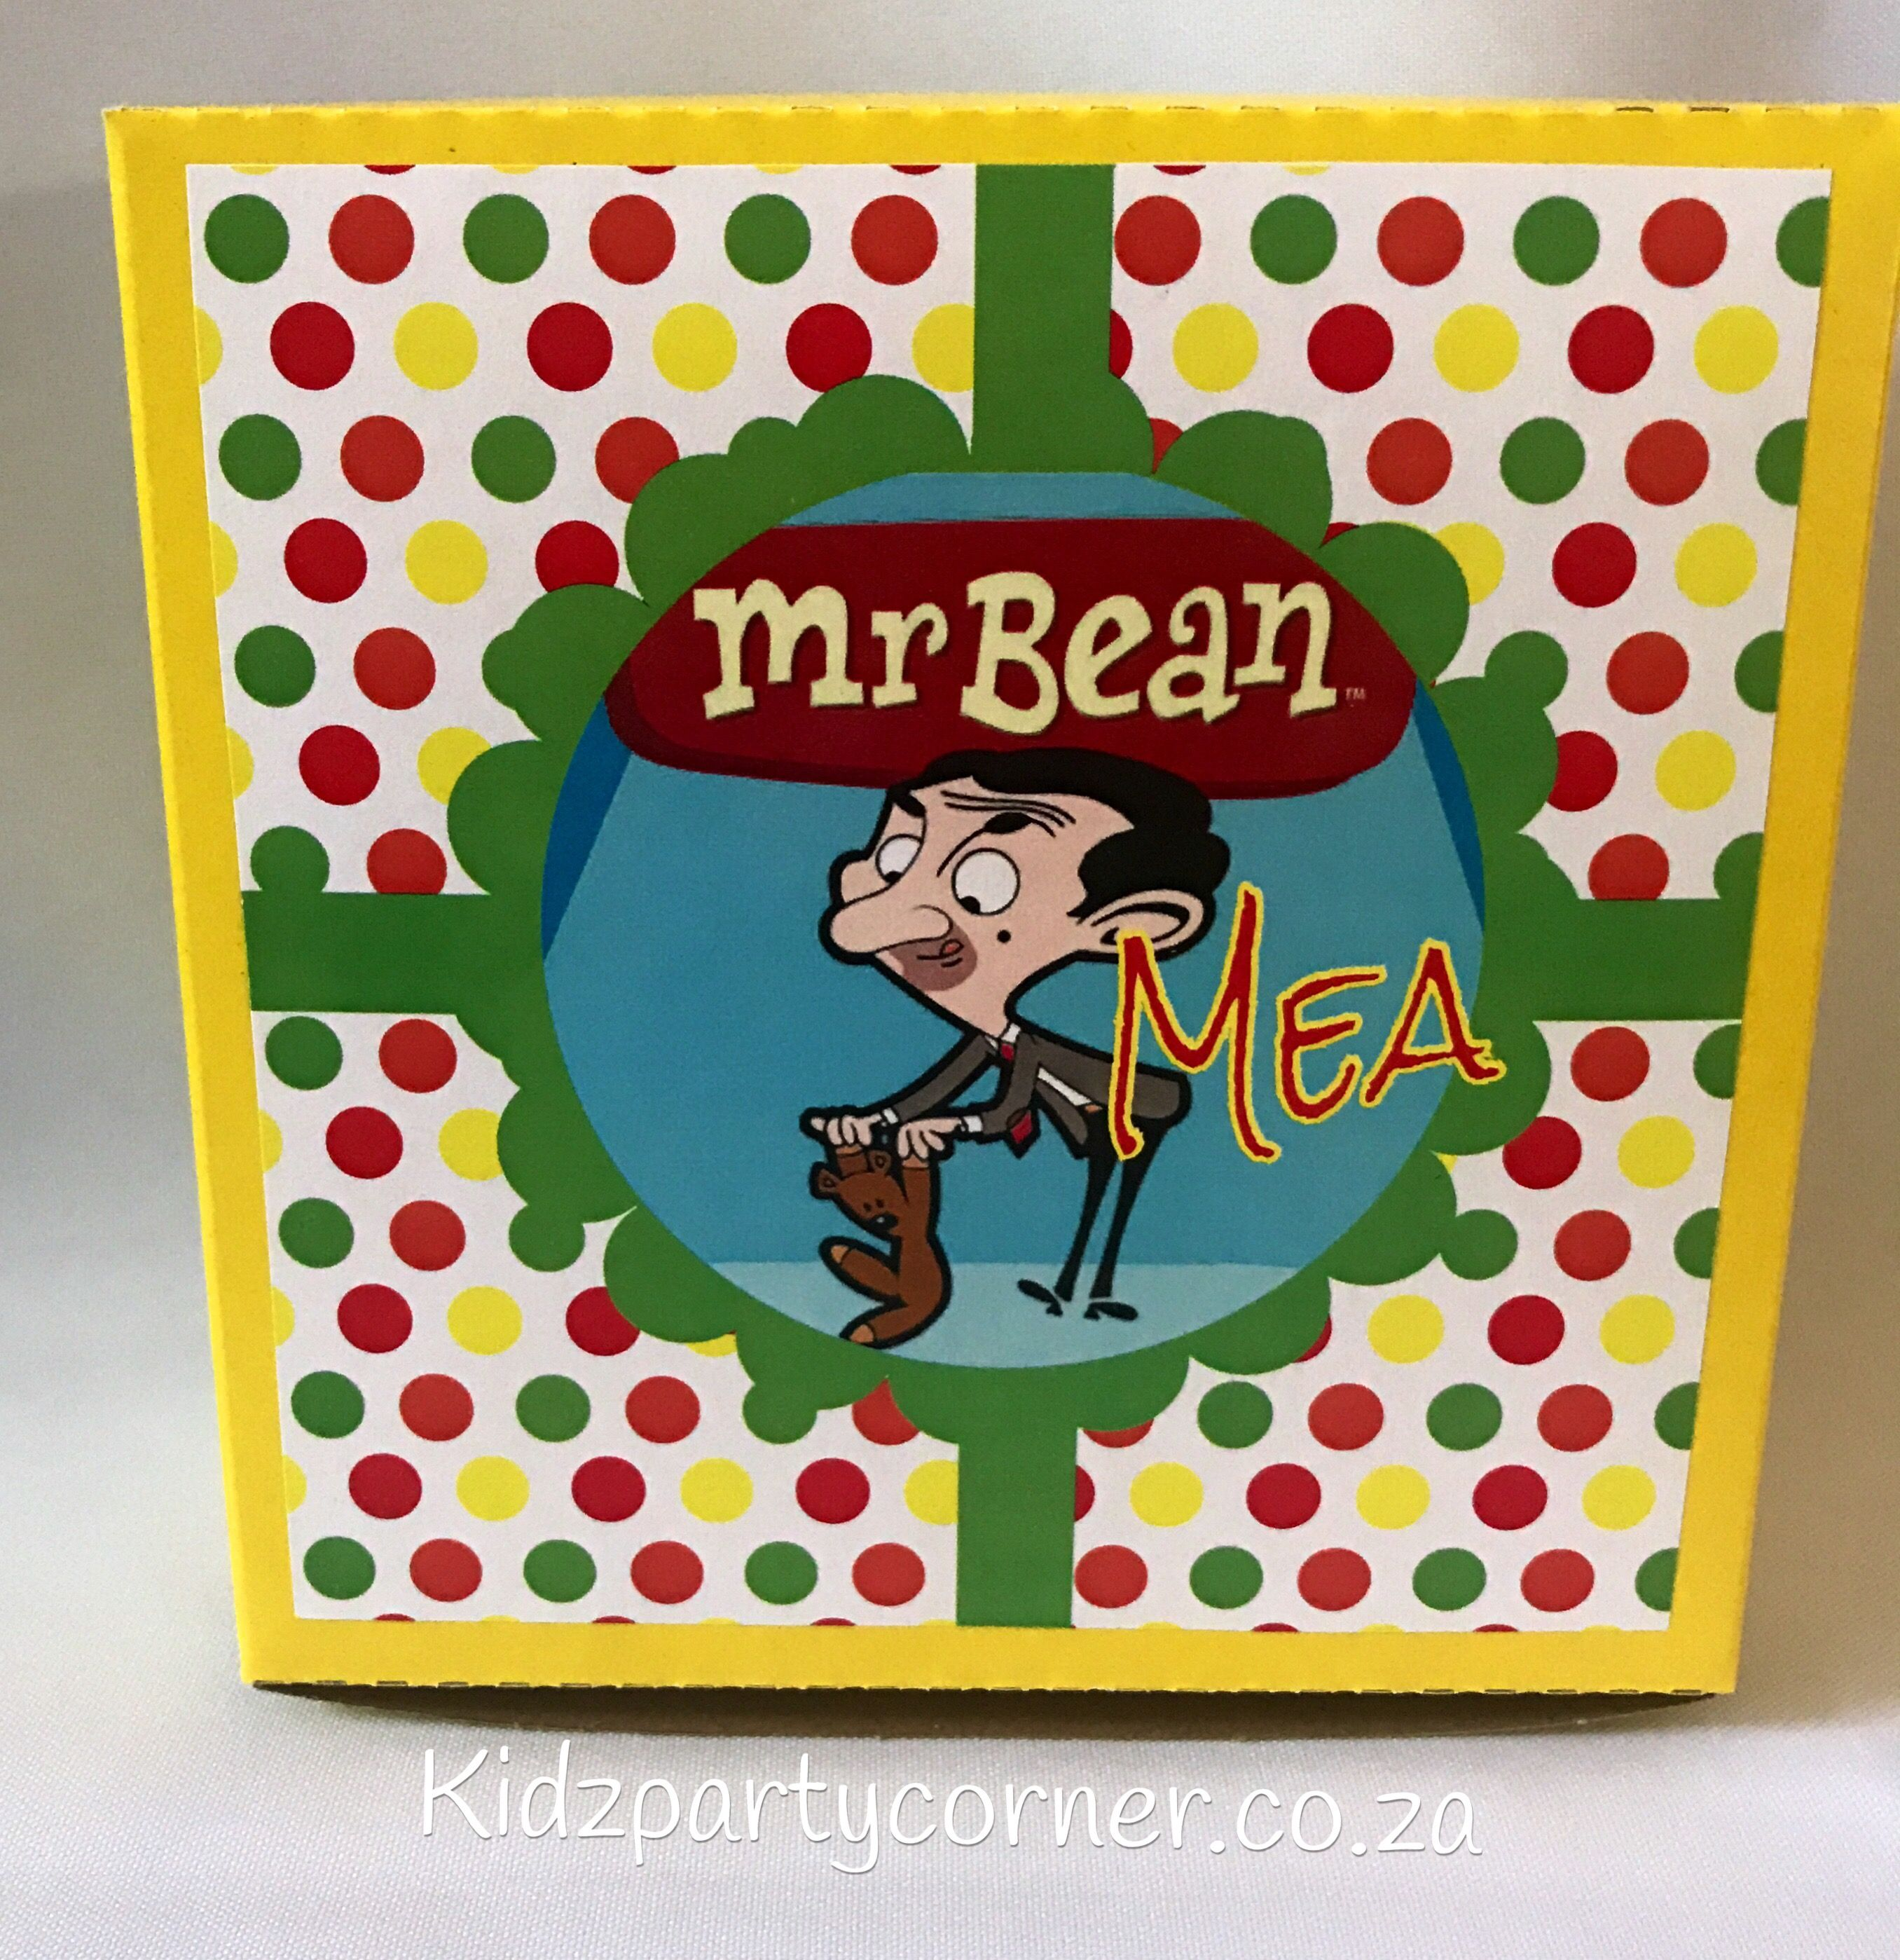 Party Pack Mr Bean Party Theme Supplies Favours And Decor We Design And Create Any Theme For Any Occasion And Ag Kids Party Themes Mr Bean Birthday Mr Bean